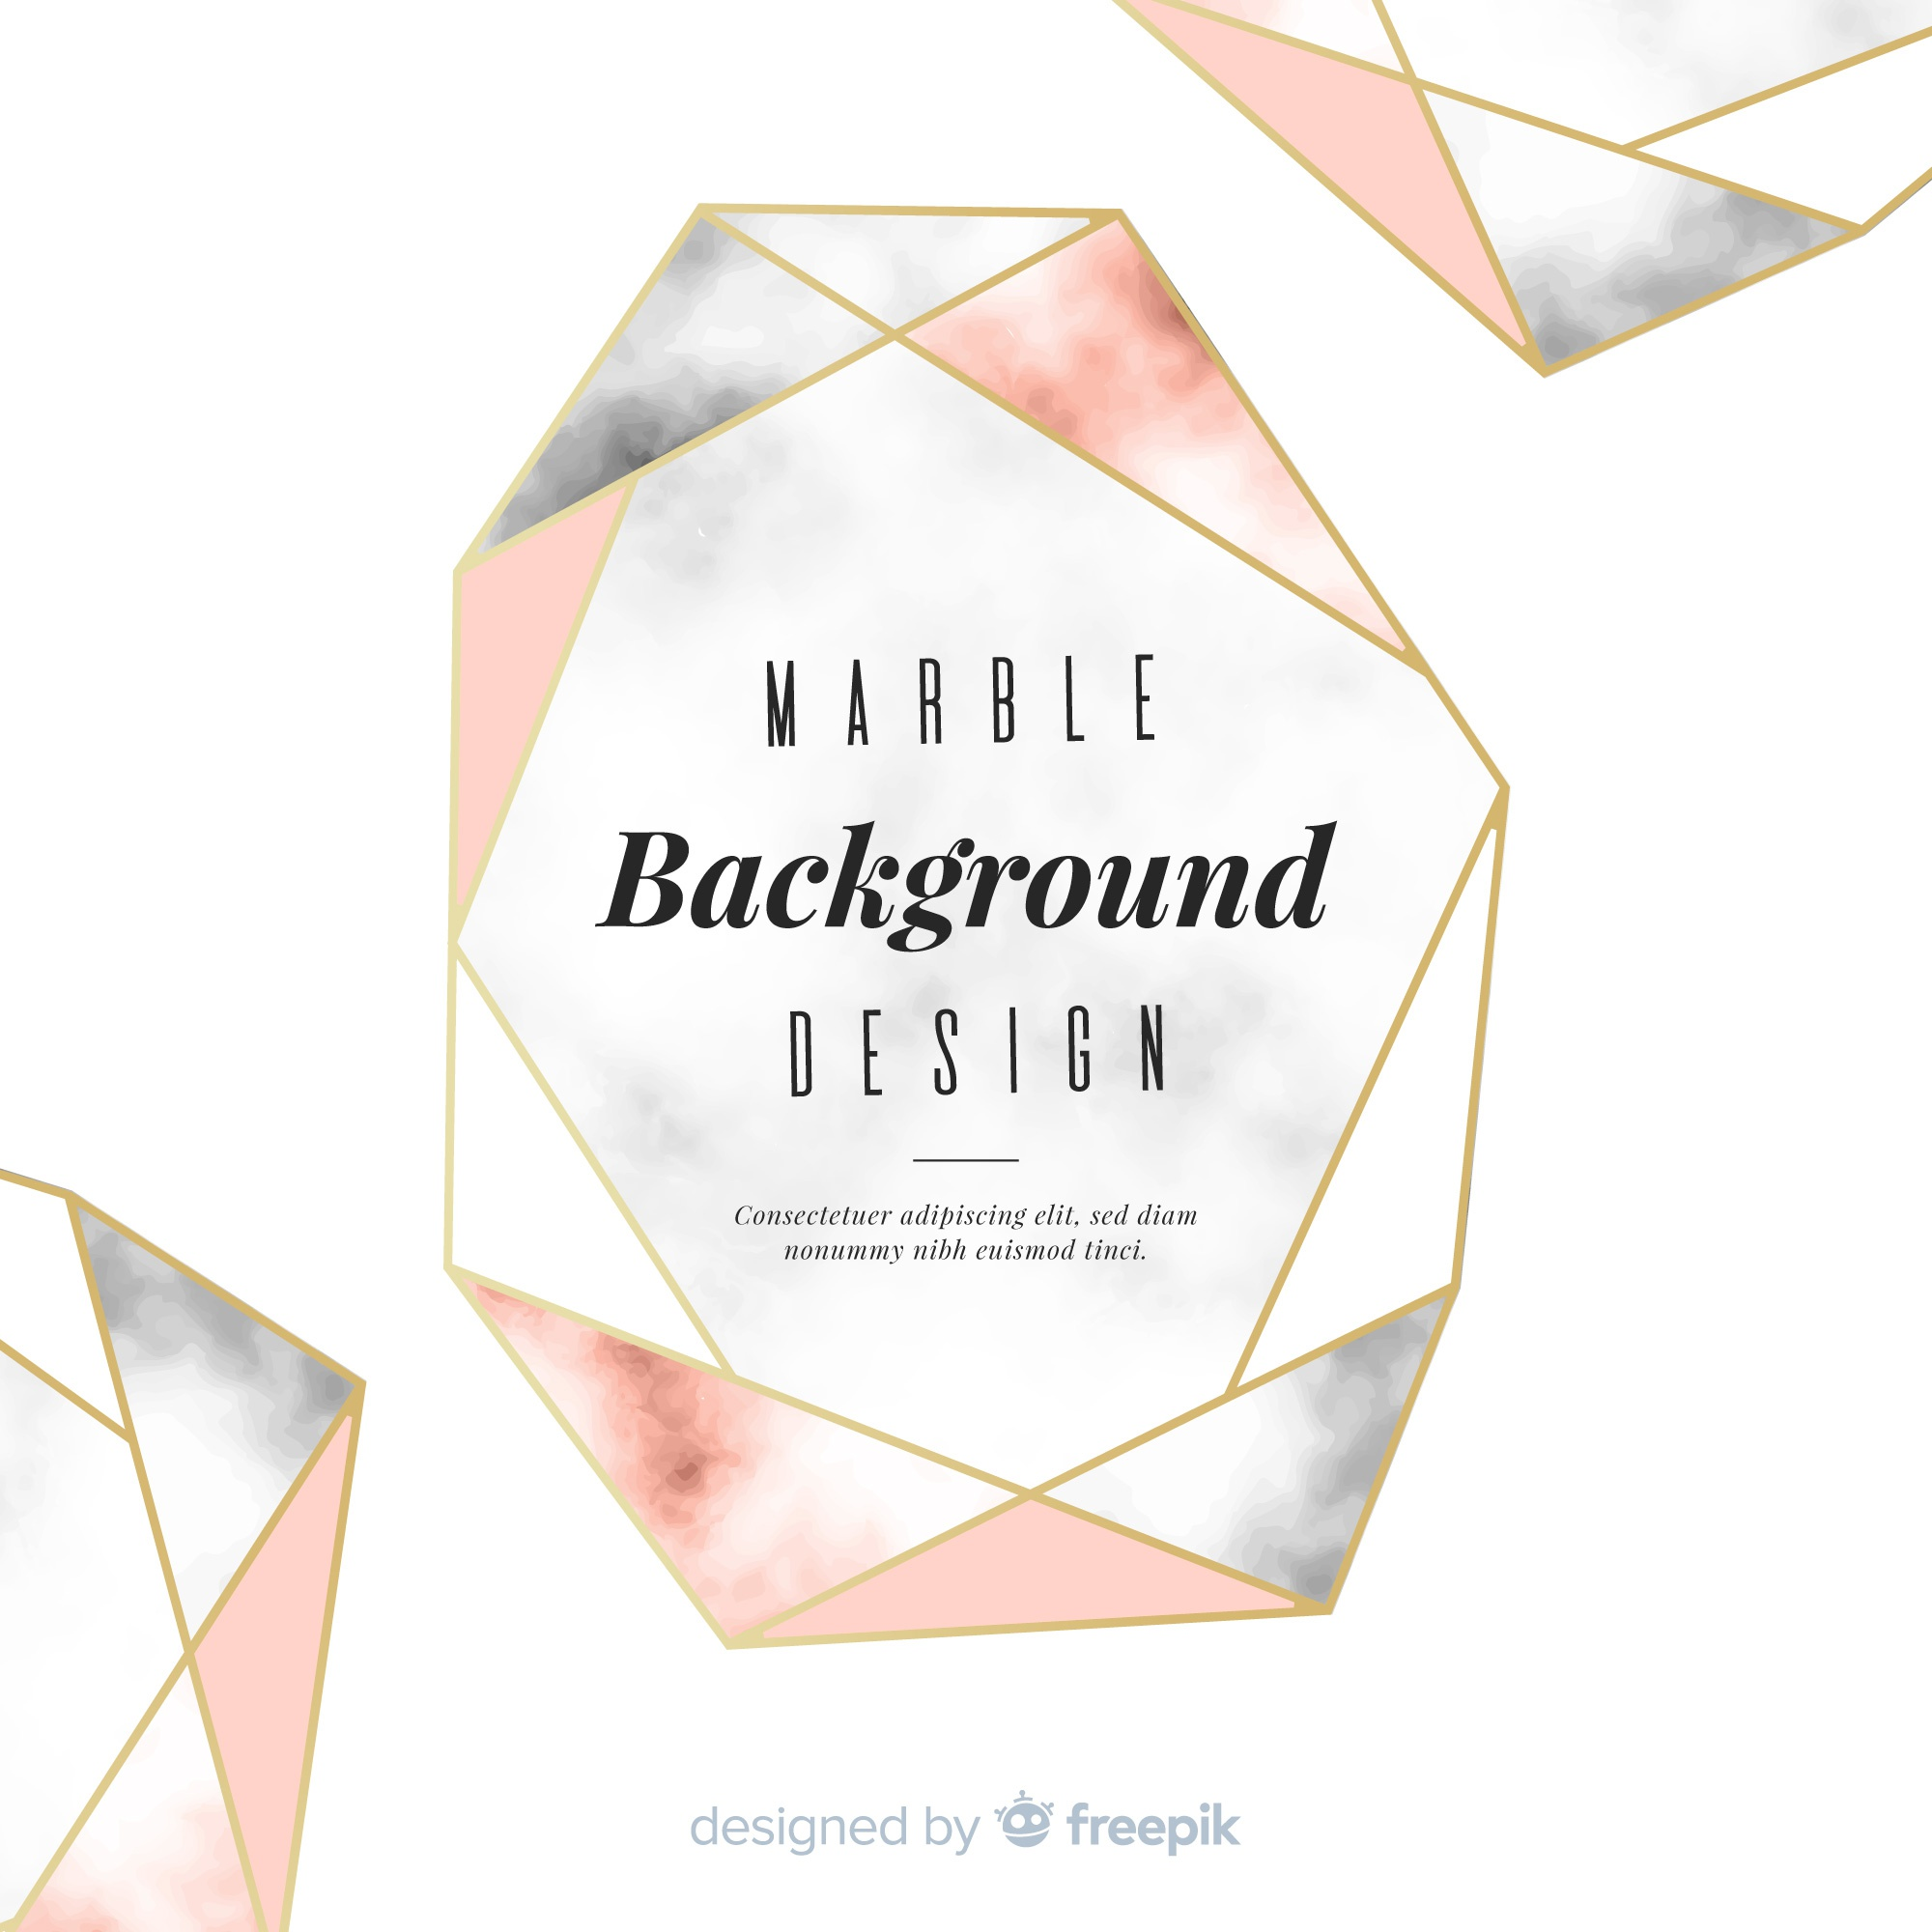 Abstract background in marble design